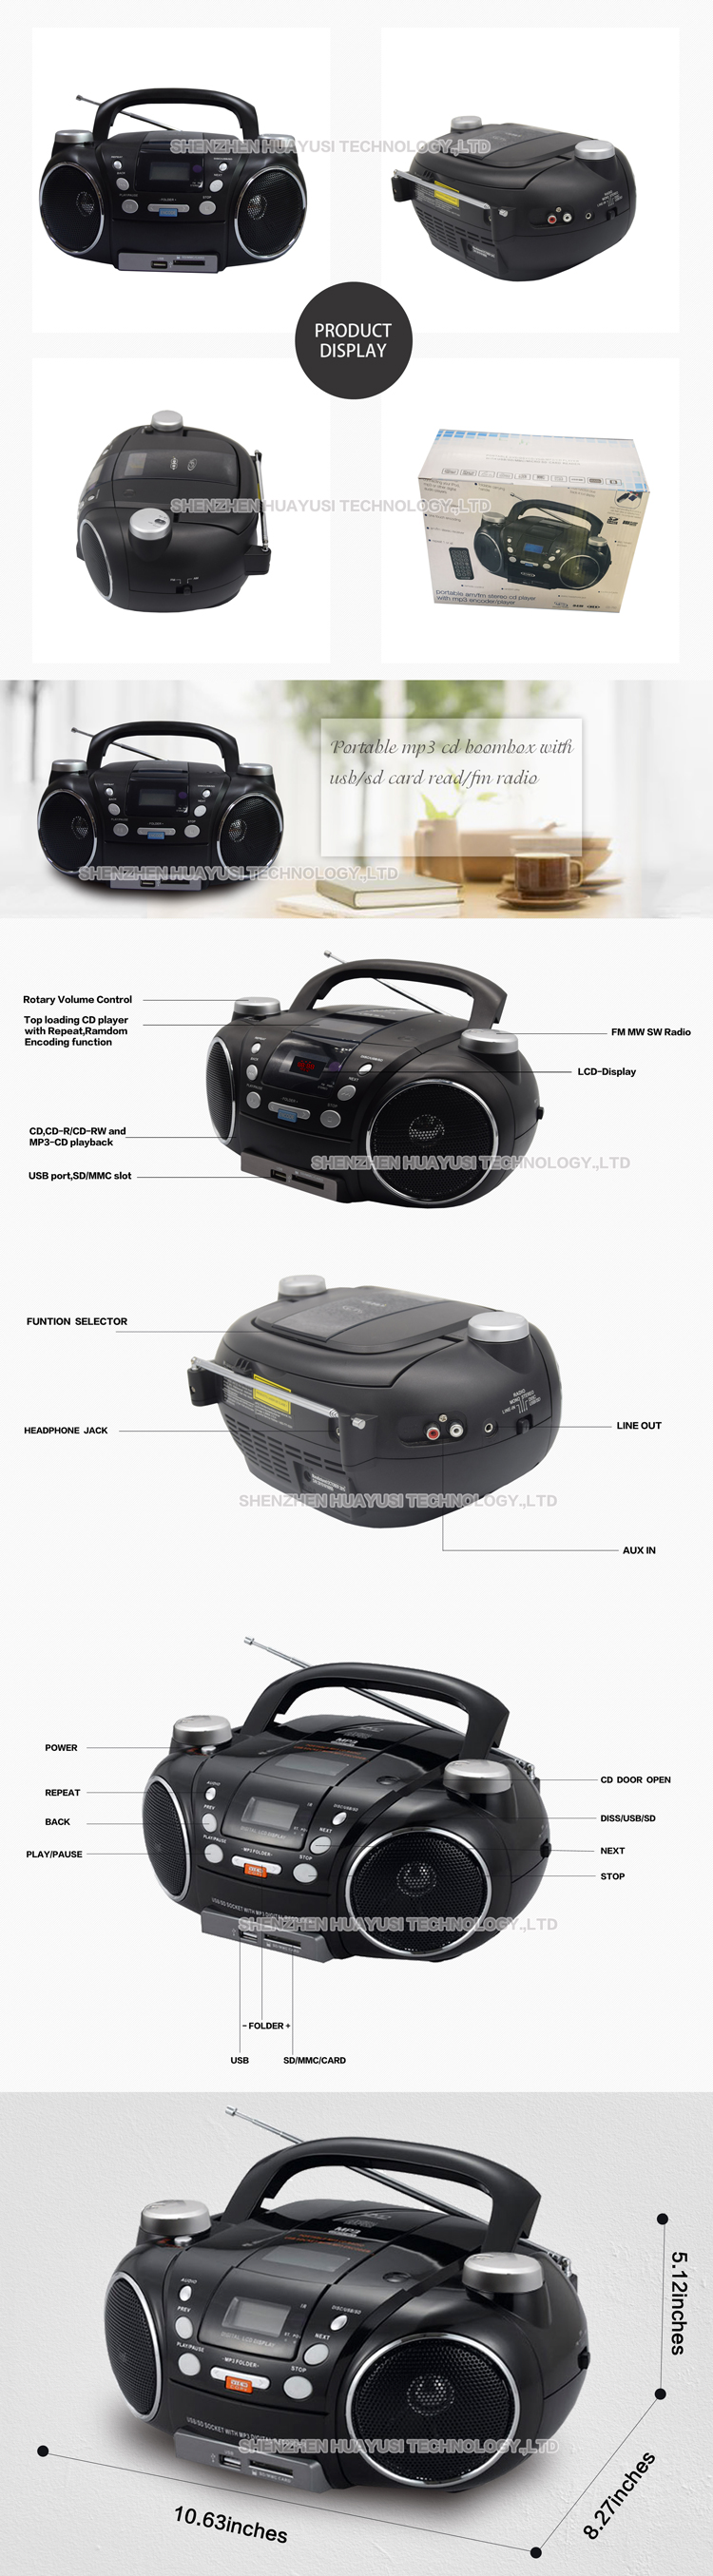 private design mp3 blutooth cd boombox player with fm/radio/usb port